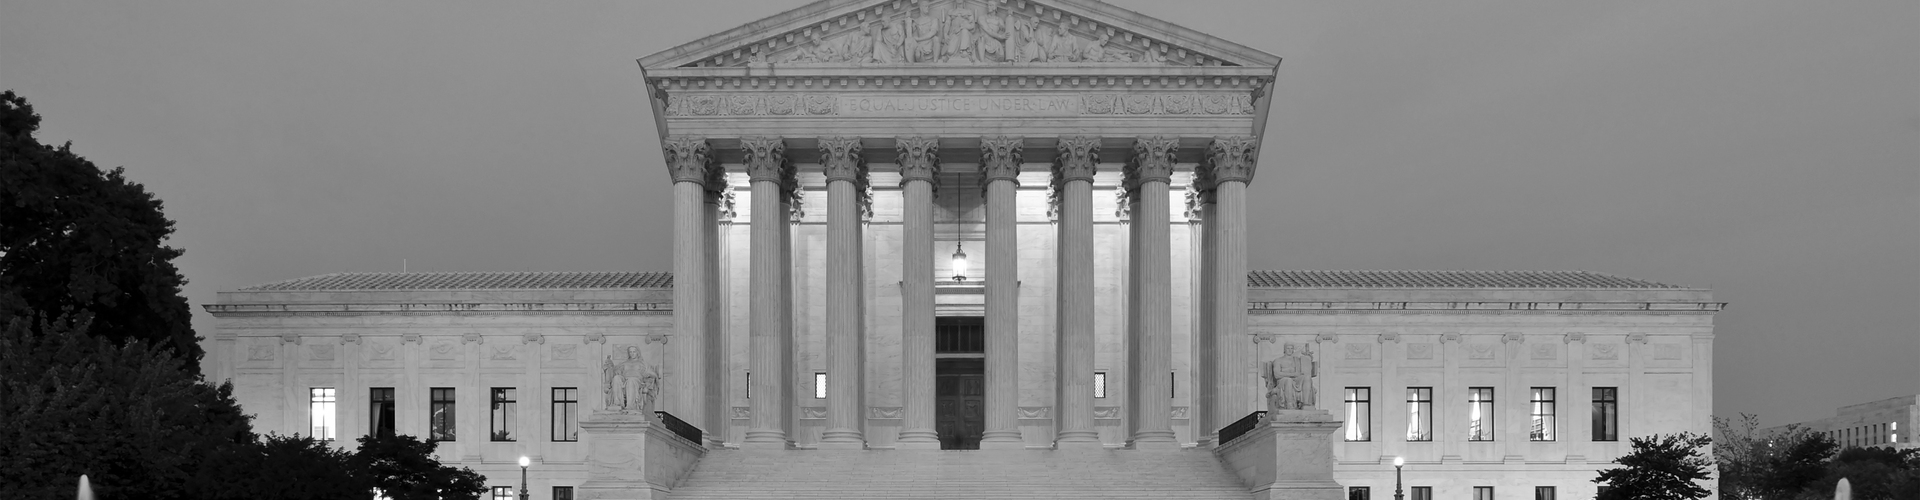 Panorama_of_United_States_Supreme_Court_Building_at_Dusk(57)